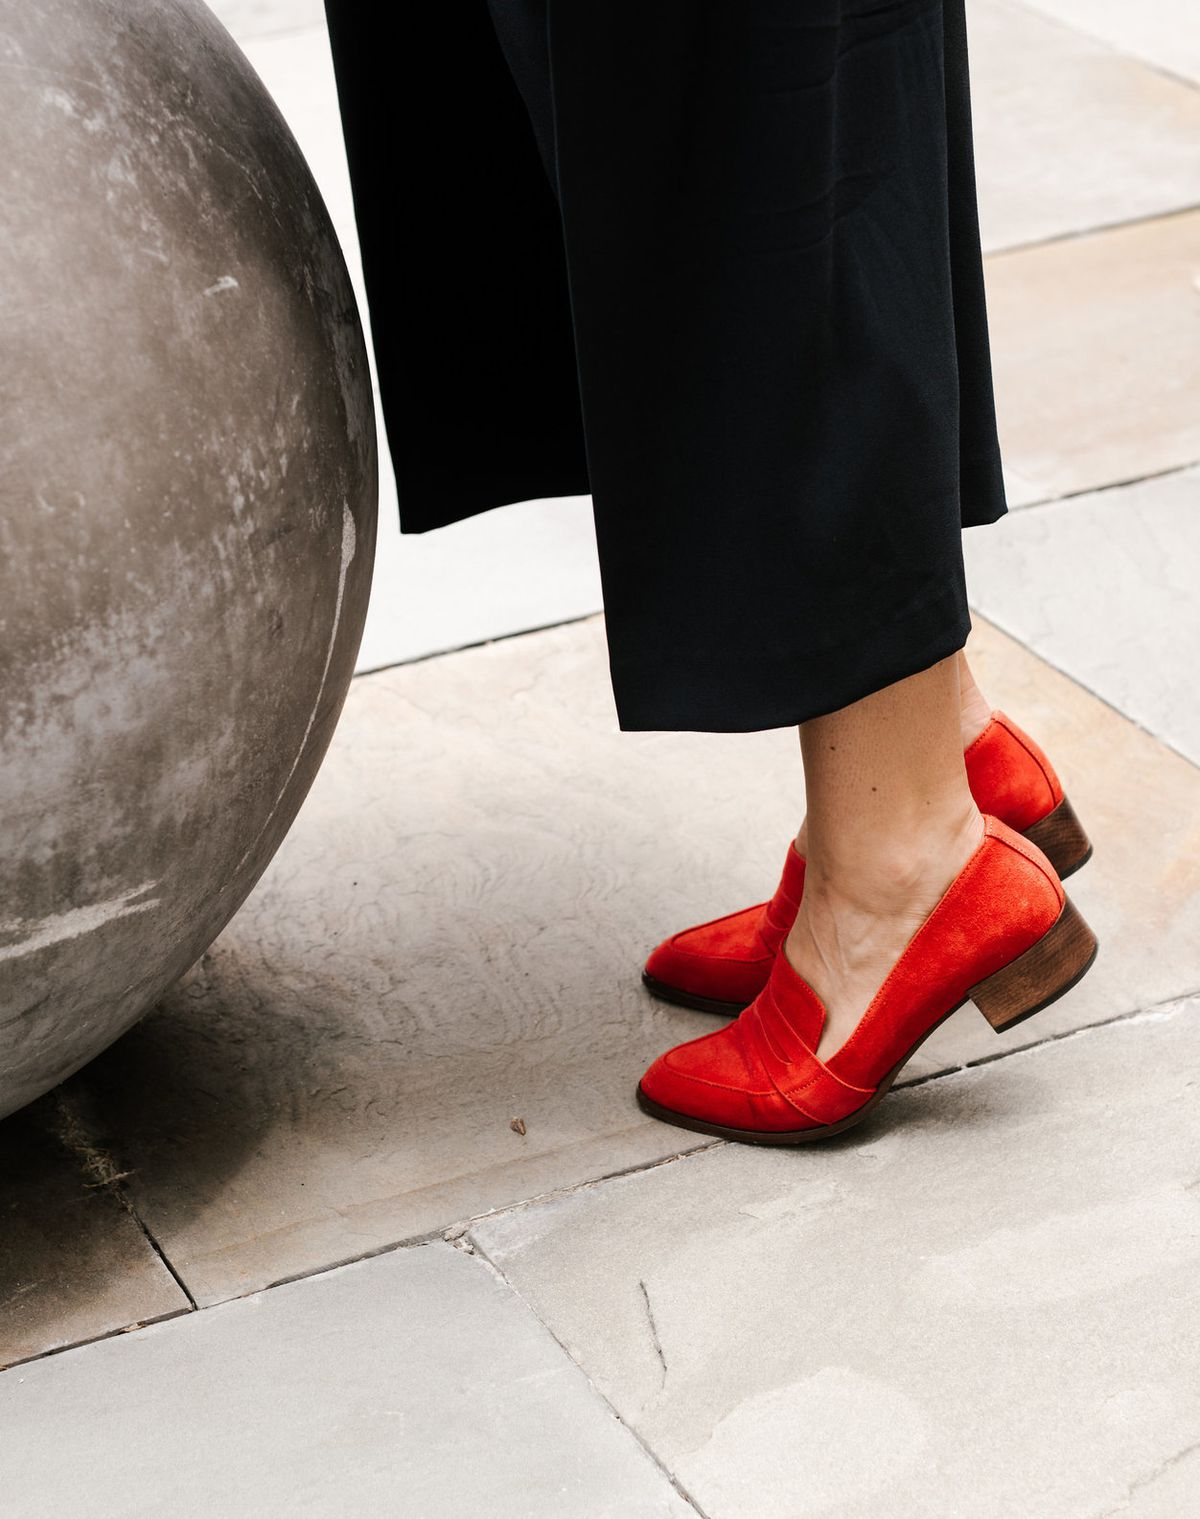 A woman wearing red loafers and black pants, shown from the waist down